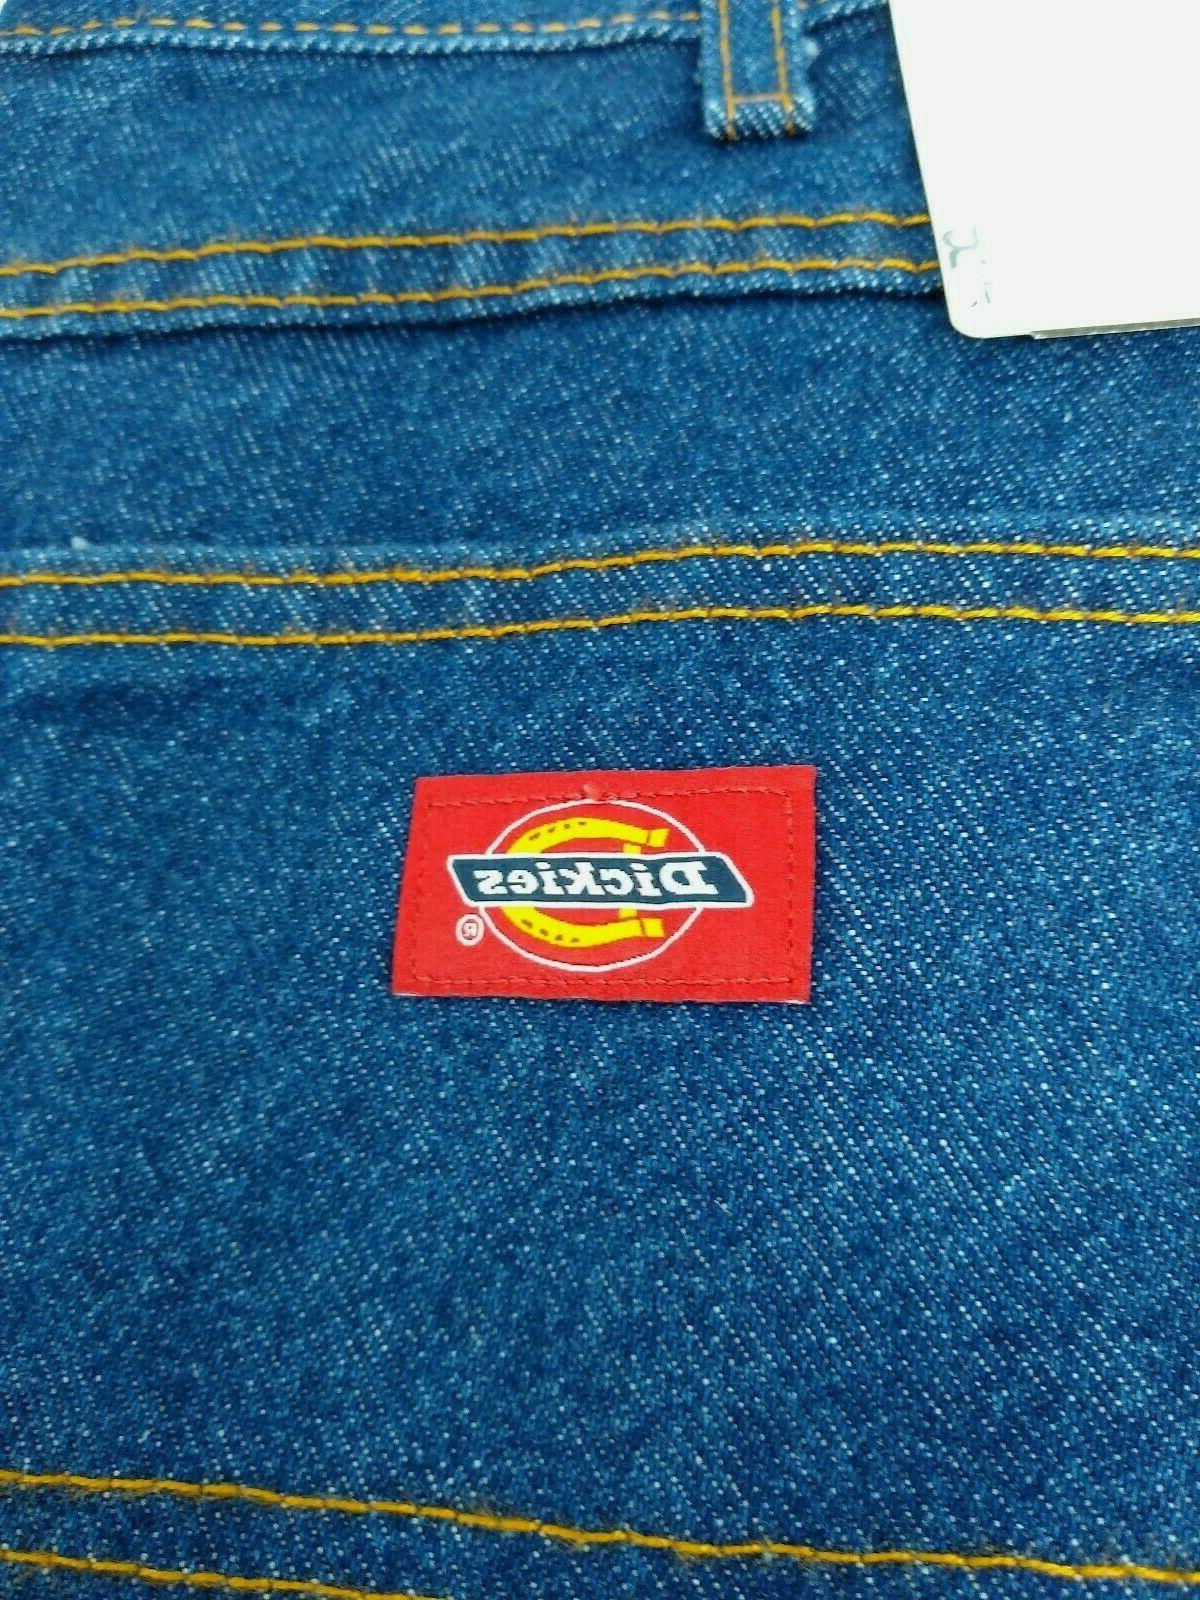 NWT Men's Dickies Seconds Jeans x